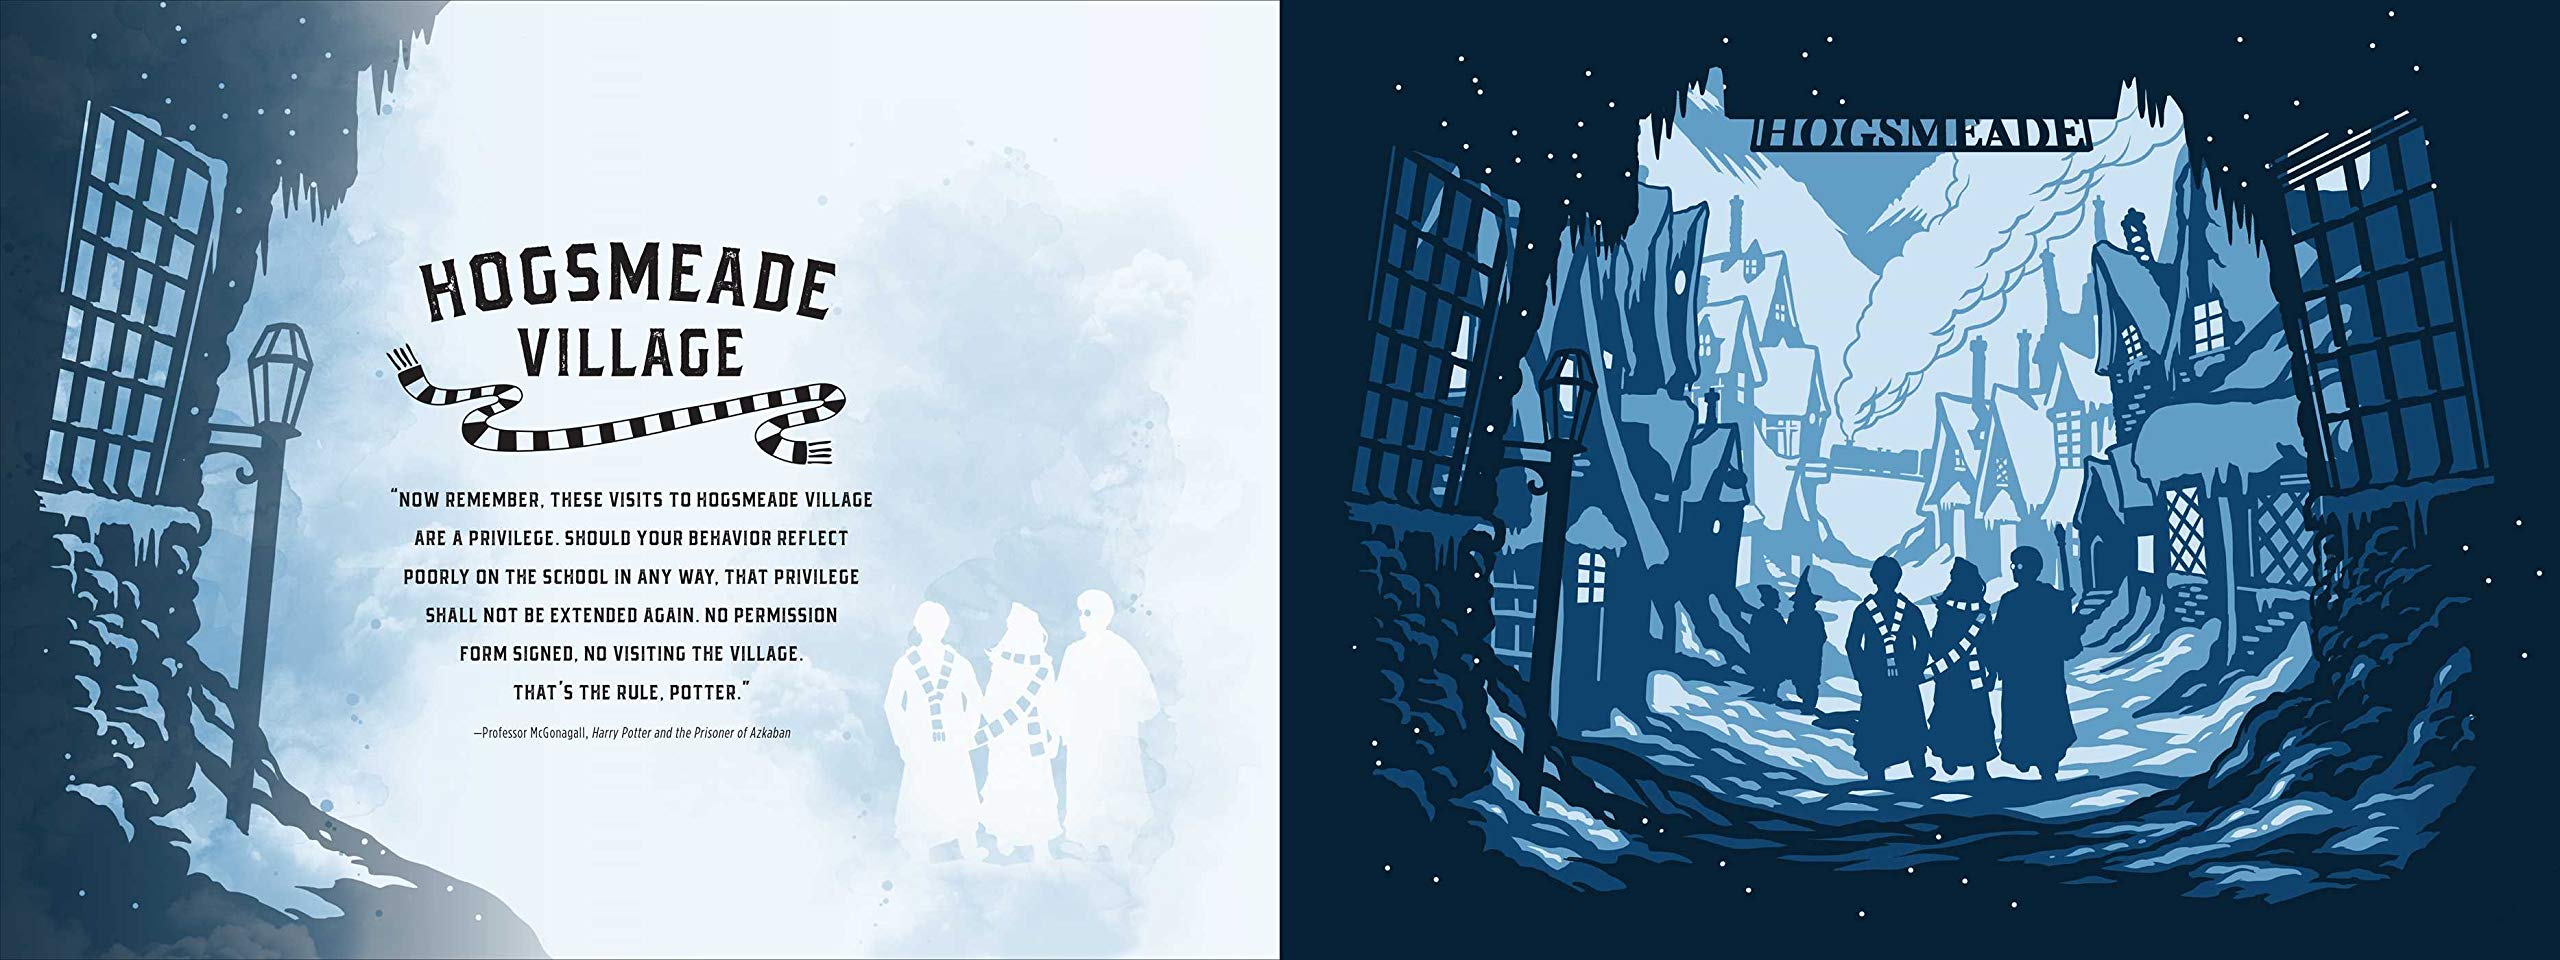 Join Harry, Hermione, and Ron in the snowy streets of Hogsmeade Village.